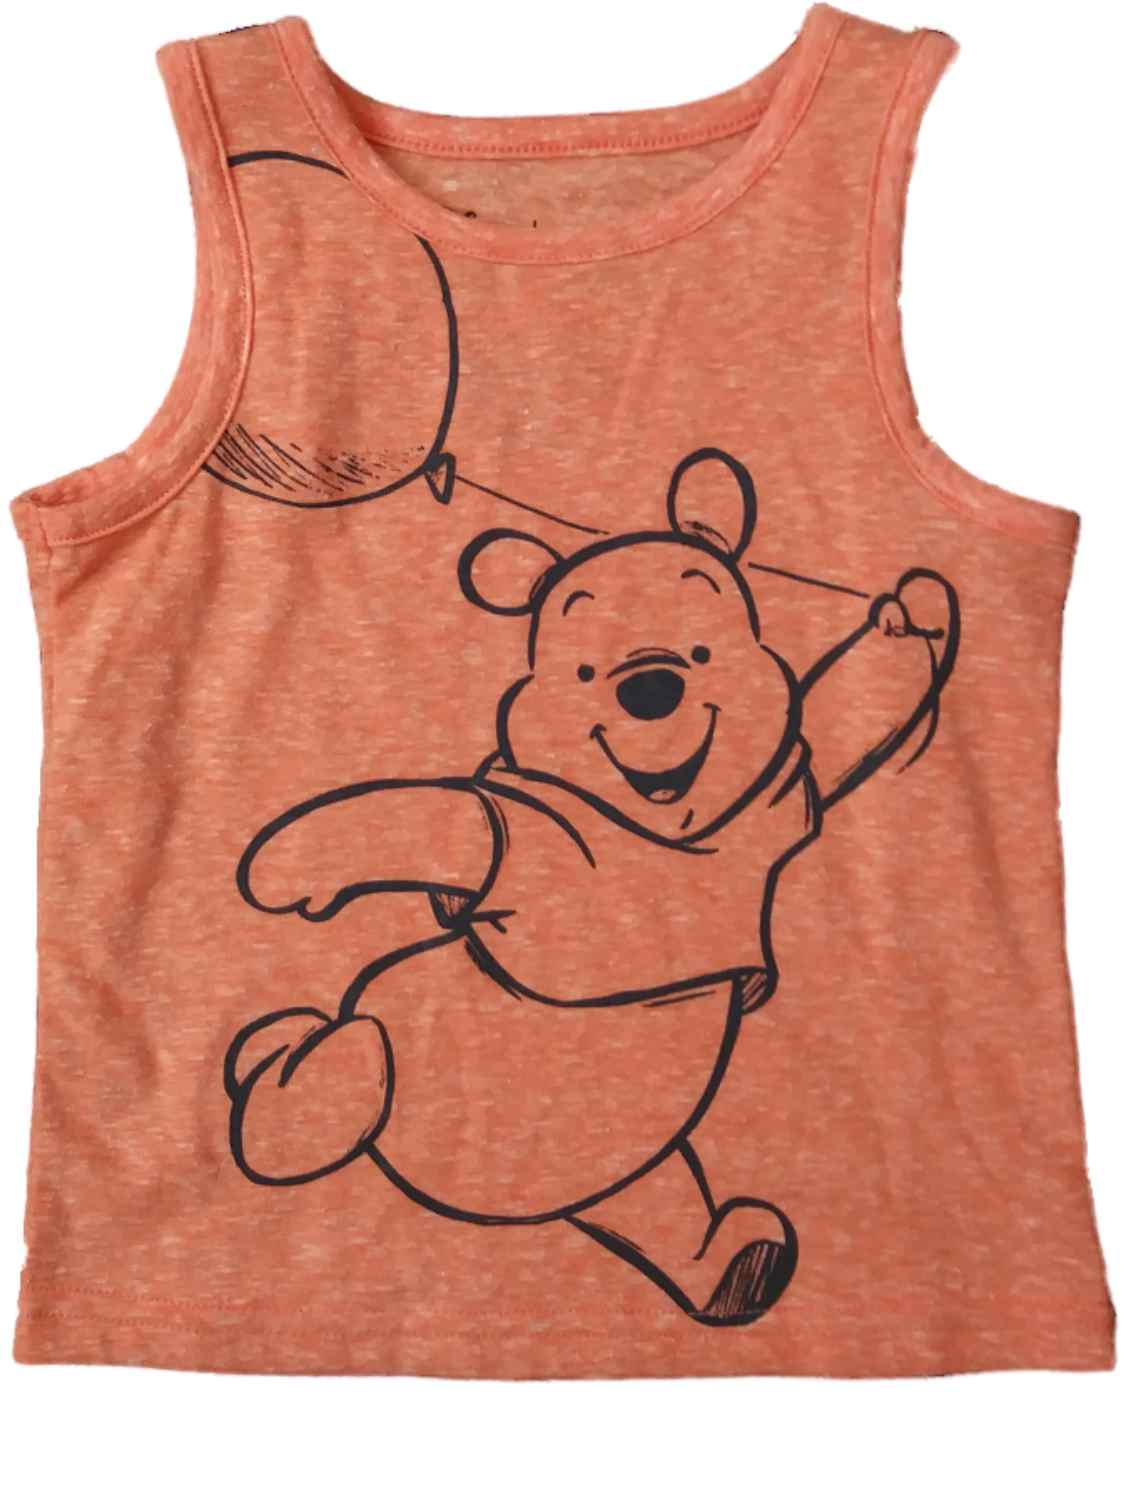 Infant Baby Boys Disney Winnie The Pooh Orange Balloon Tank Top Muscle Shirt